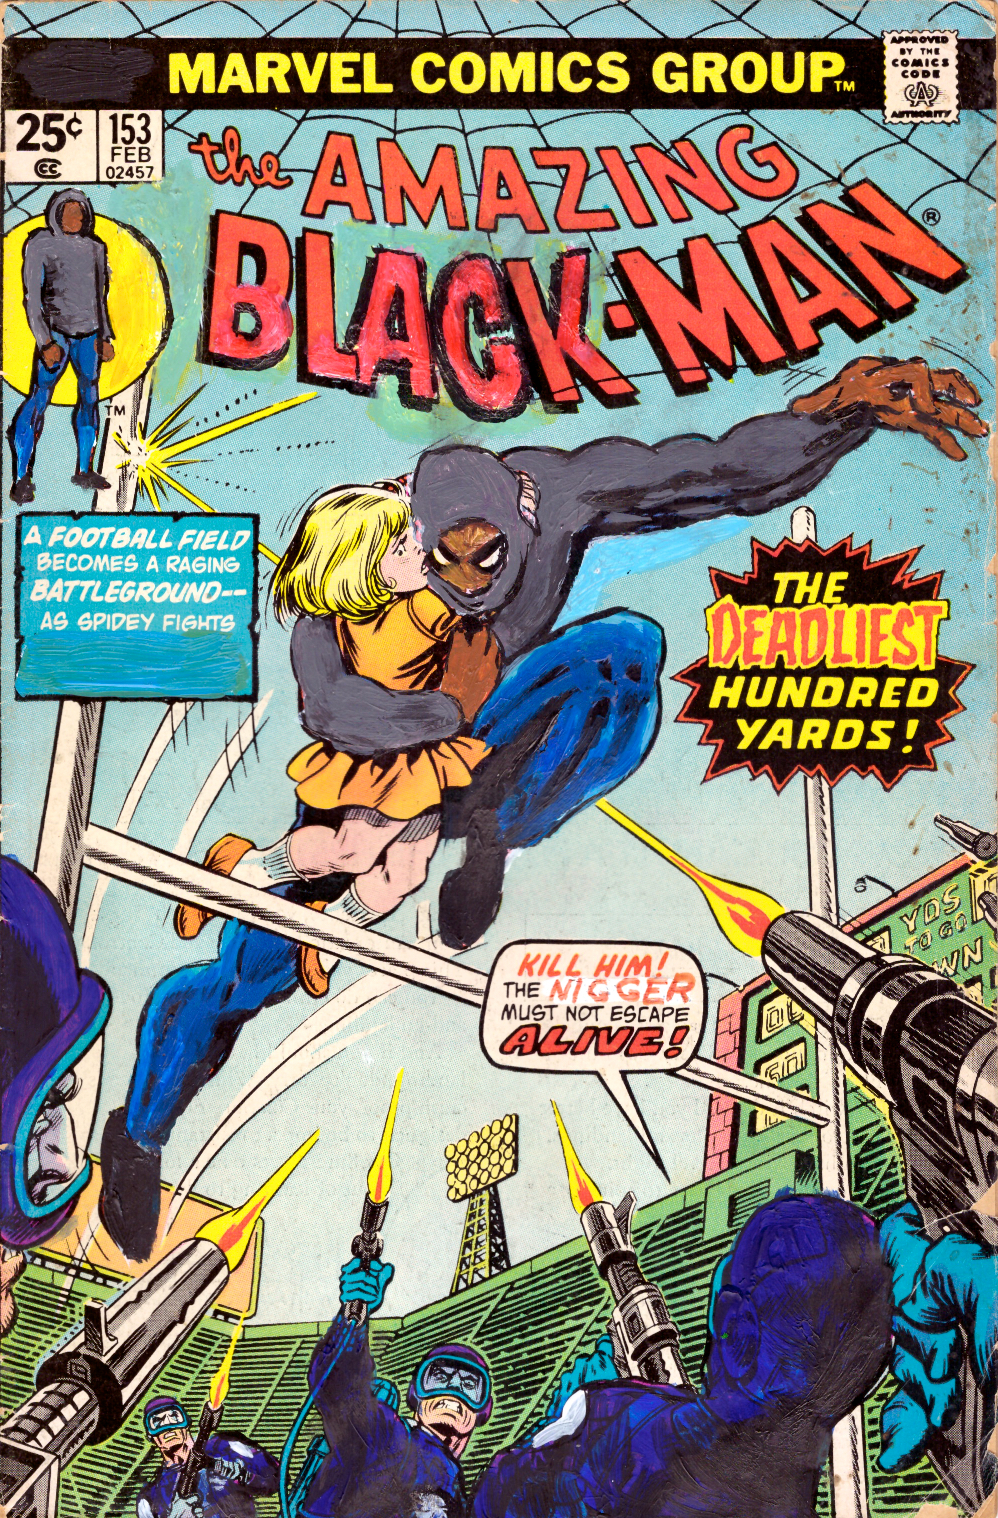 Kumasi J. Barnett The Amazing Black-Man #153 The Deadliest Hundred Yards, 2018 Acrylic, marker, pen and oil marker on comic book 9 3/4h x 6 1/4w inches